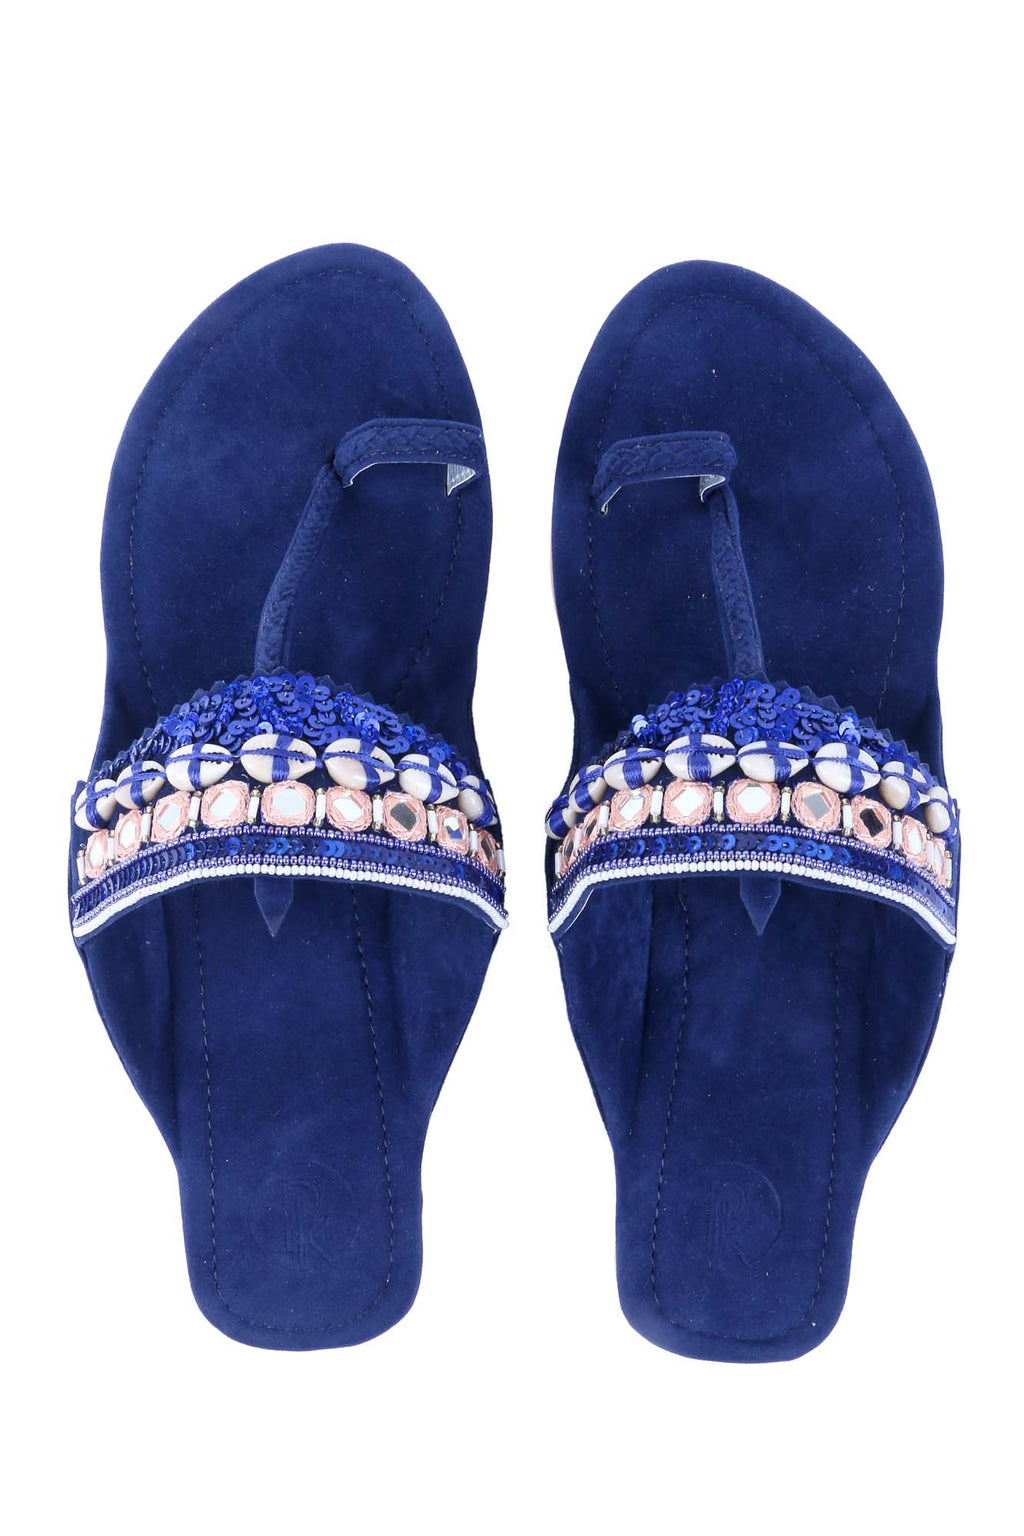 Royal Blue Cowrie Kolhapuri by Preet Kaur